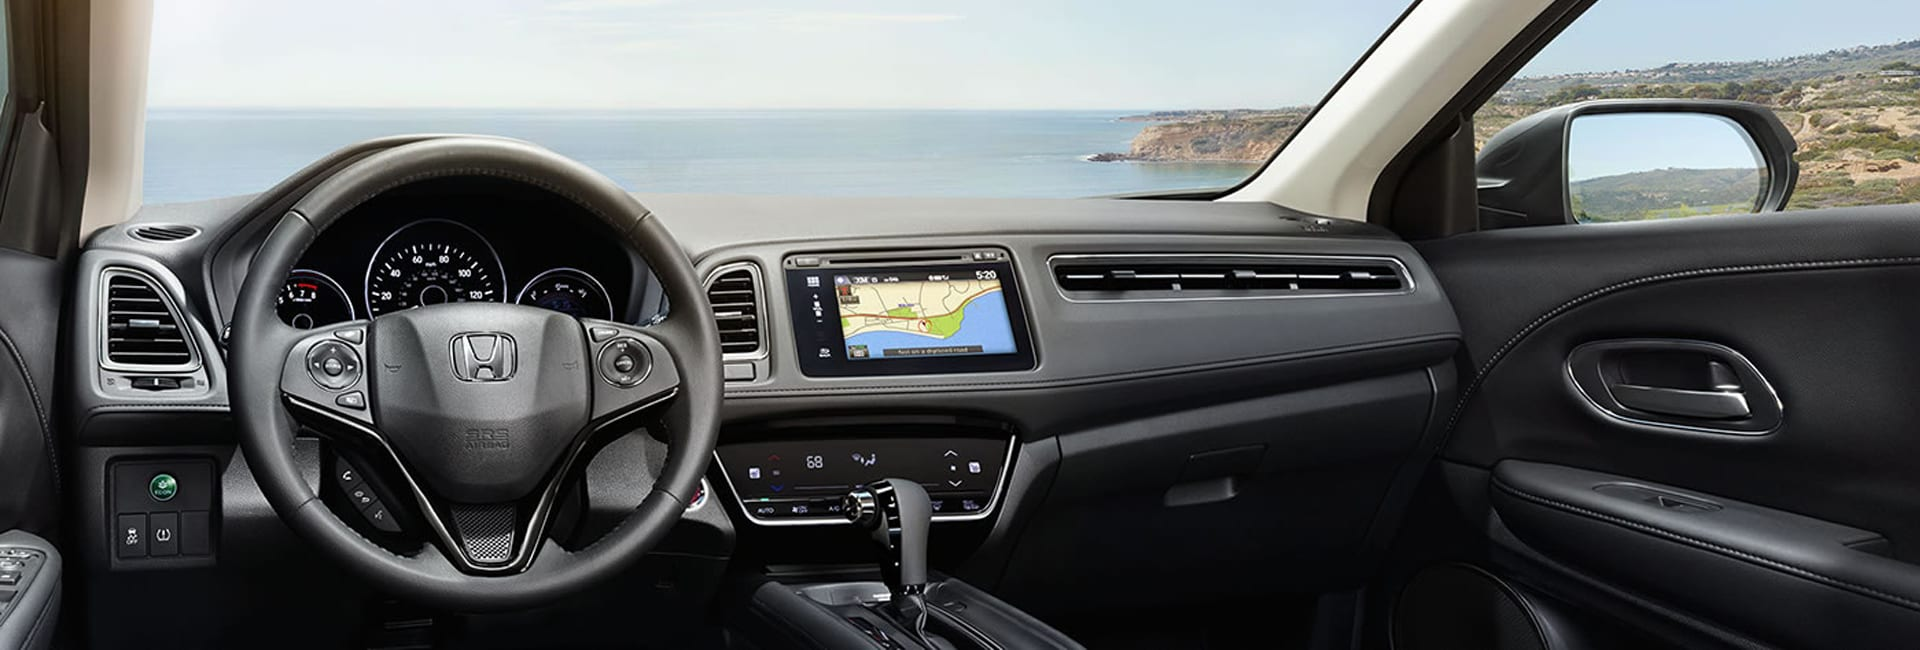 2020 Honda HR-V Interior Features